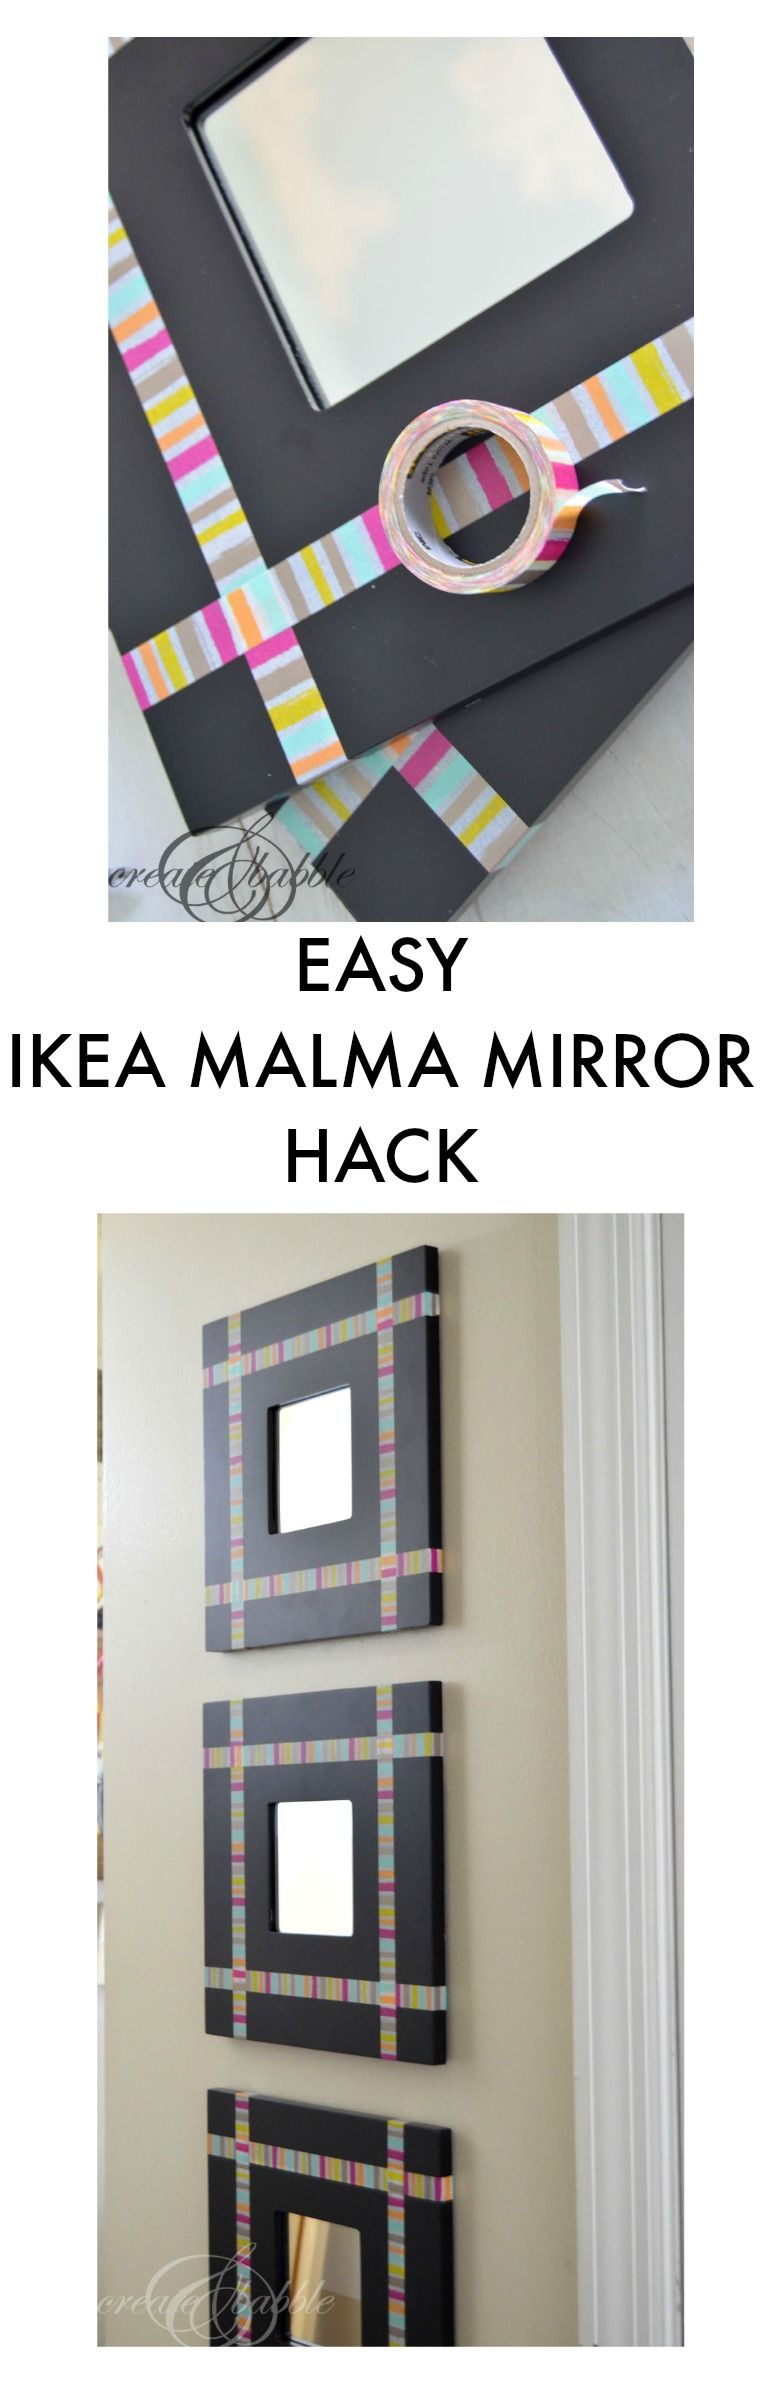 MALMA MIRROR HACK